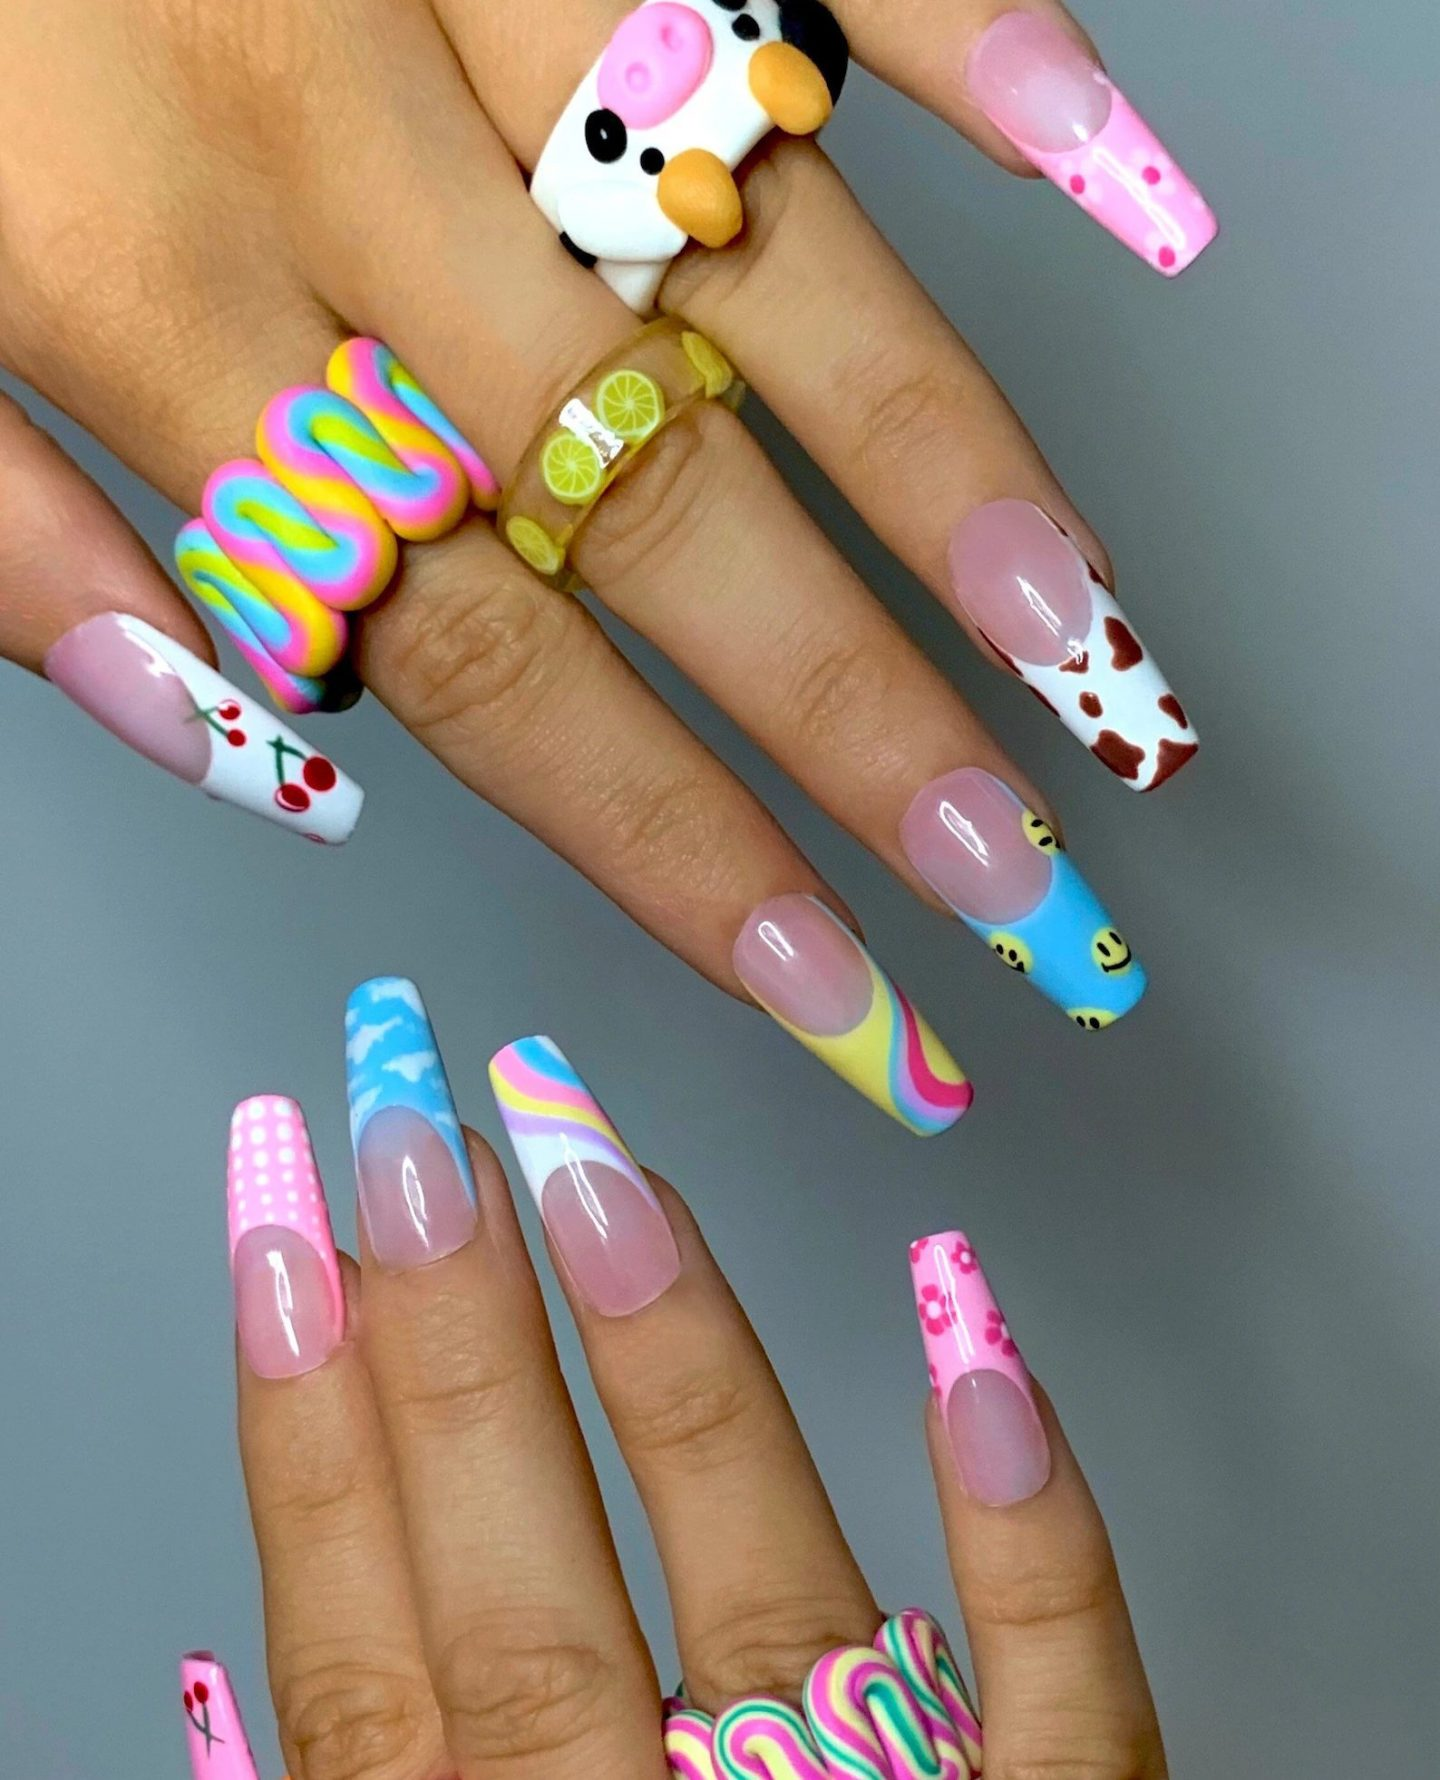 70s colorful pastel French tip nails with smileys